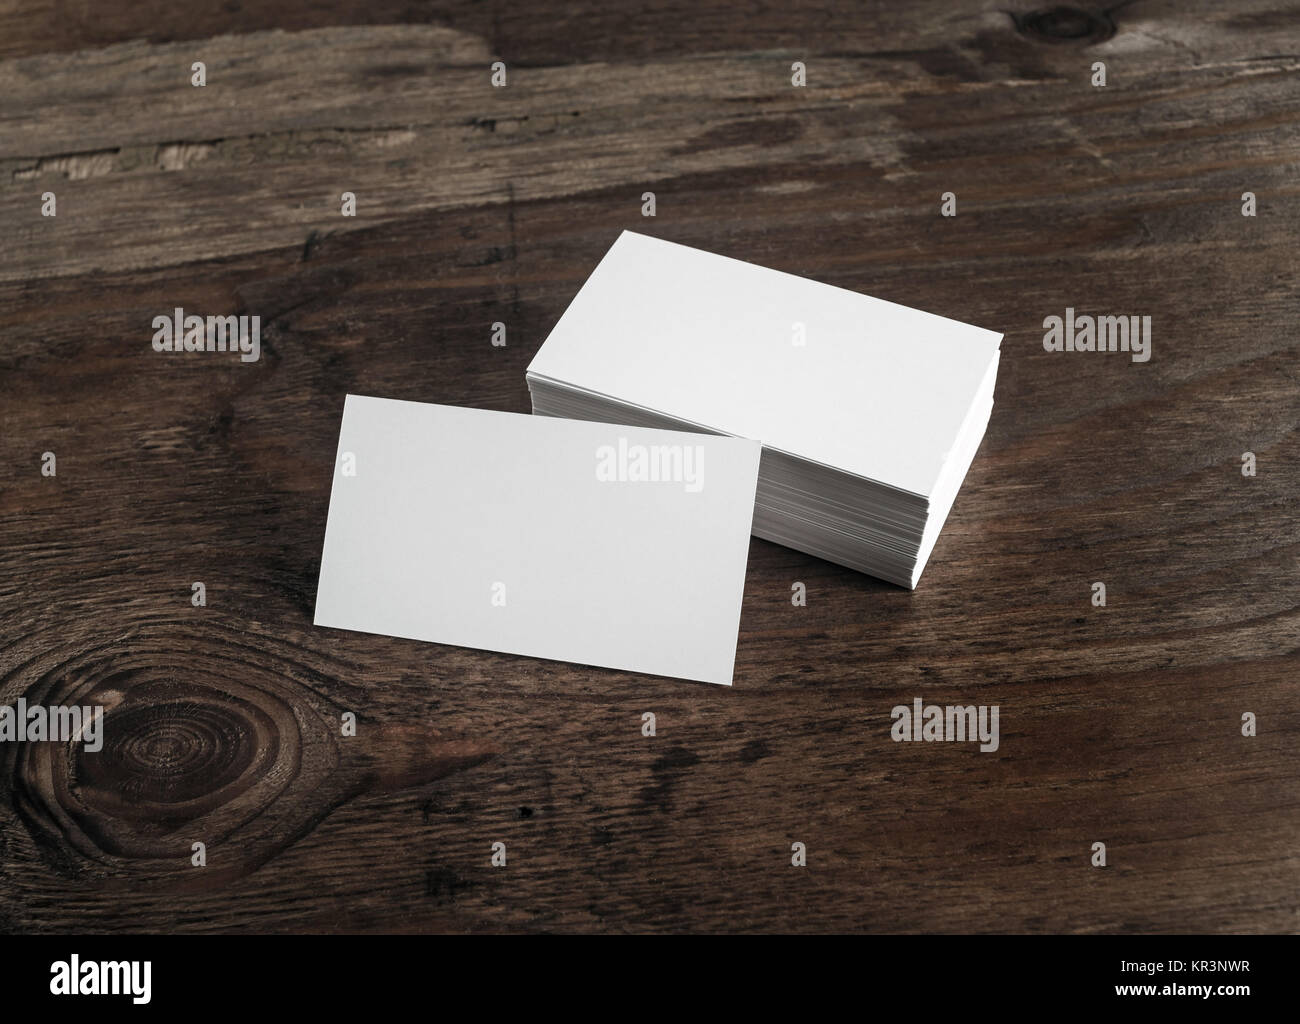 White business cards - Stock Image